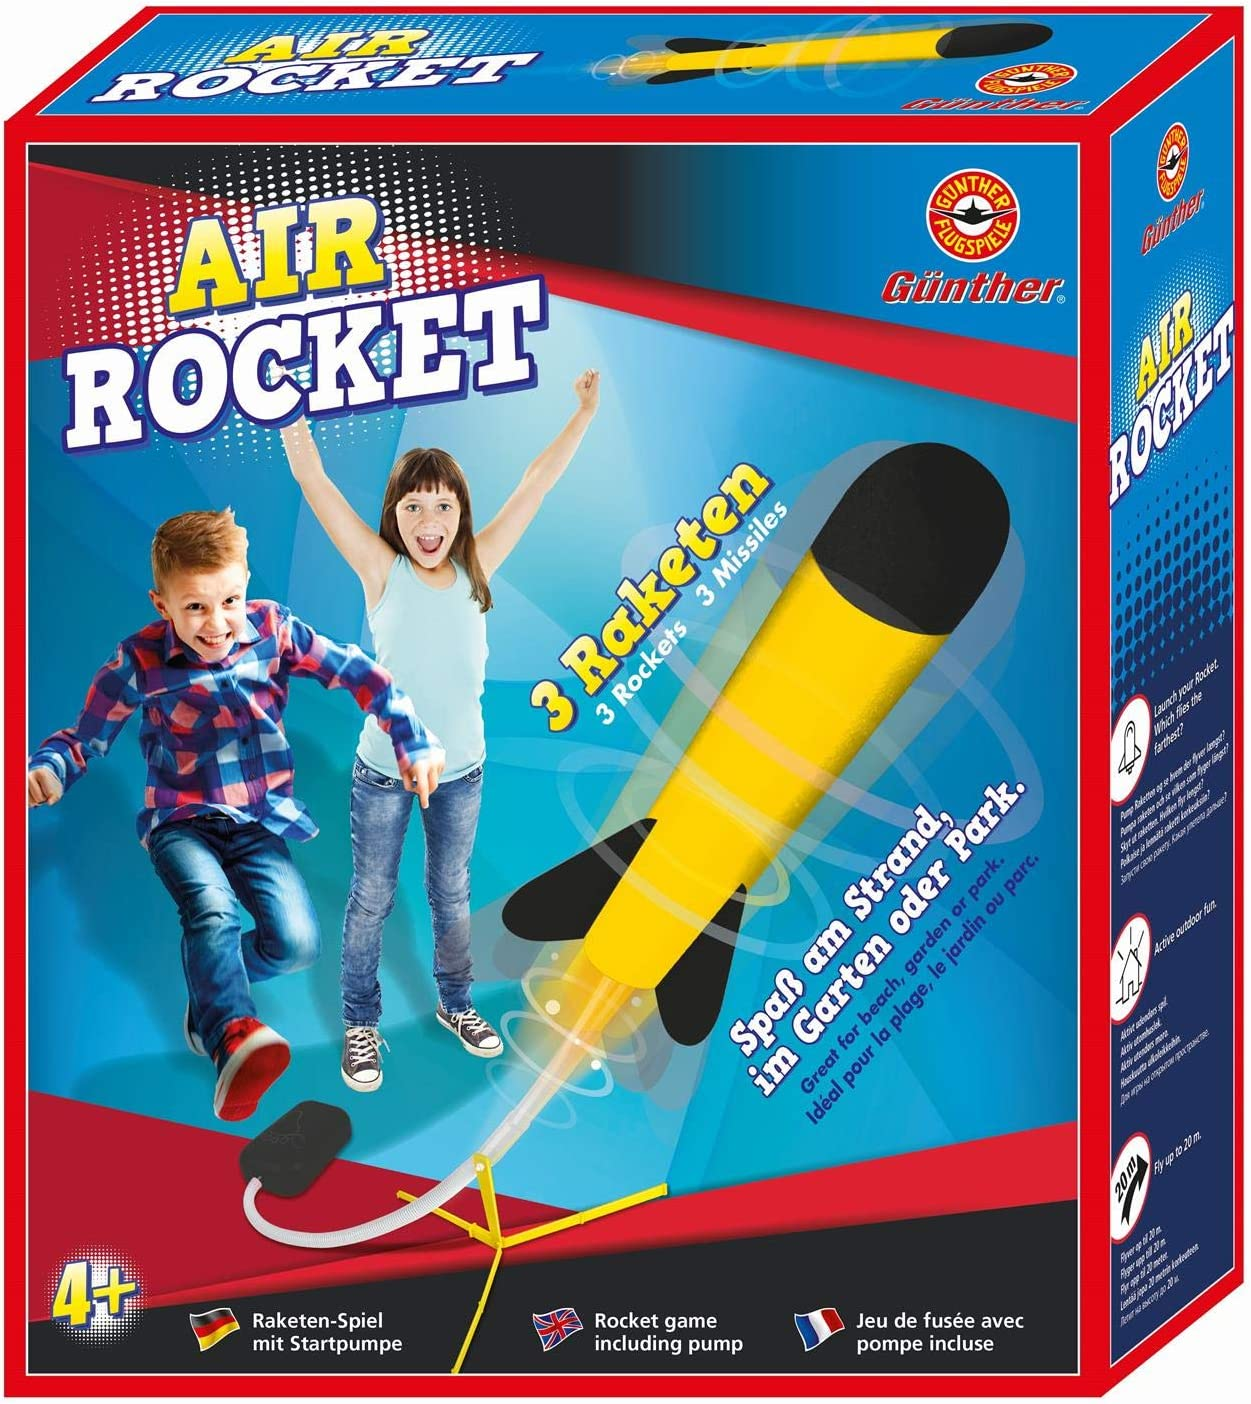 Garten Gadget: Air Rocket